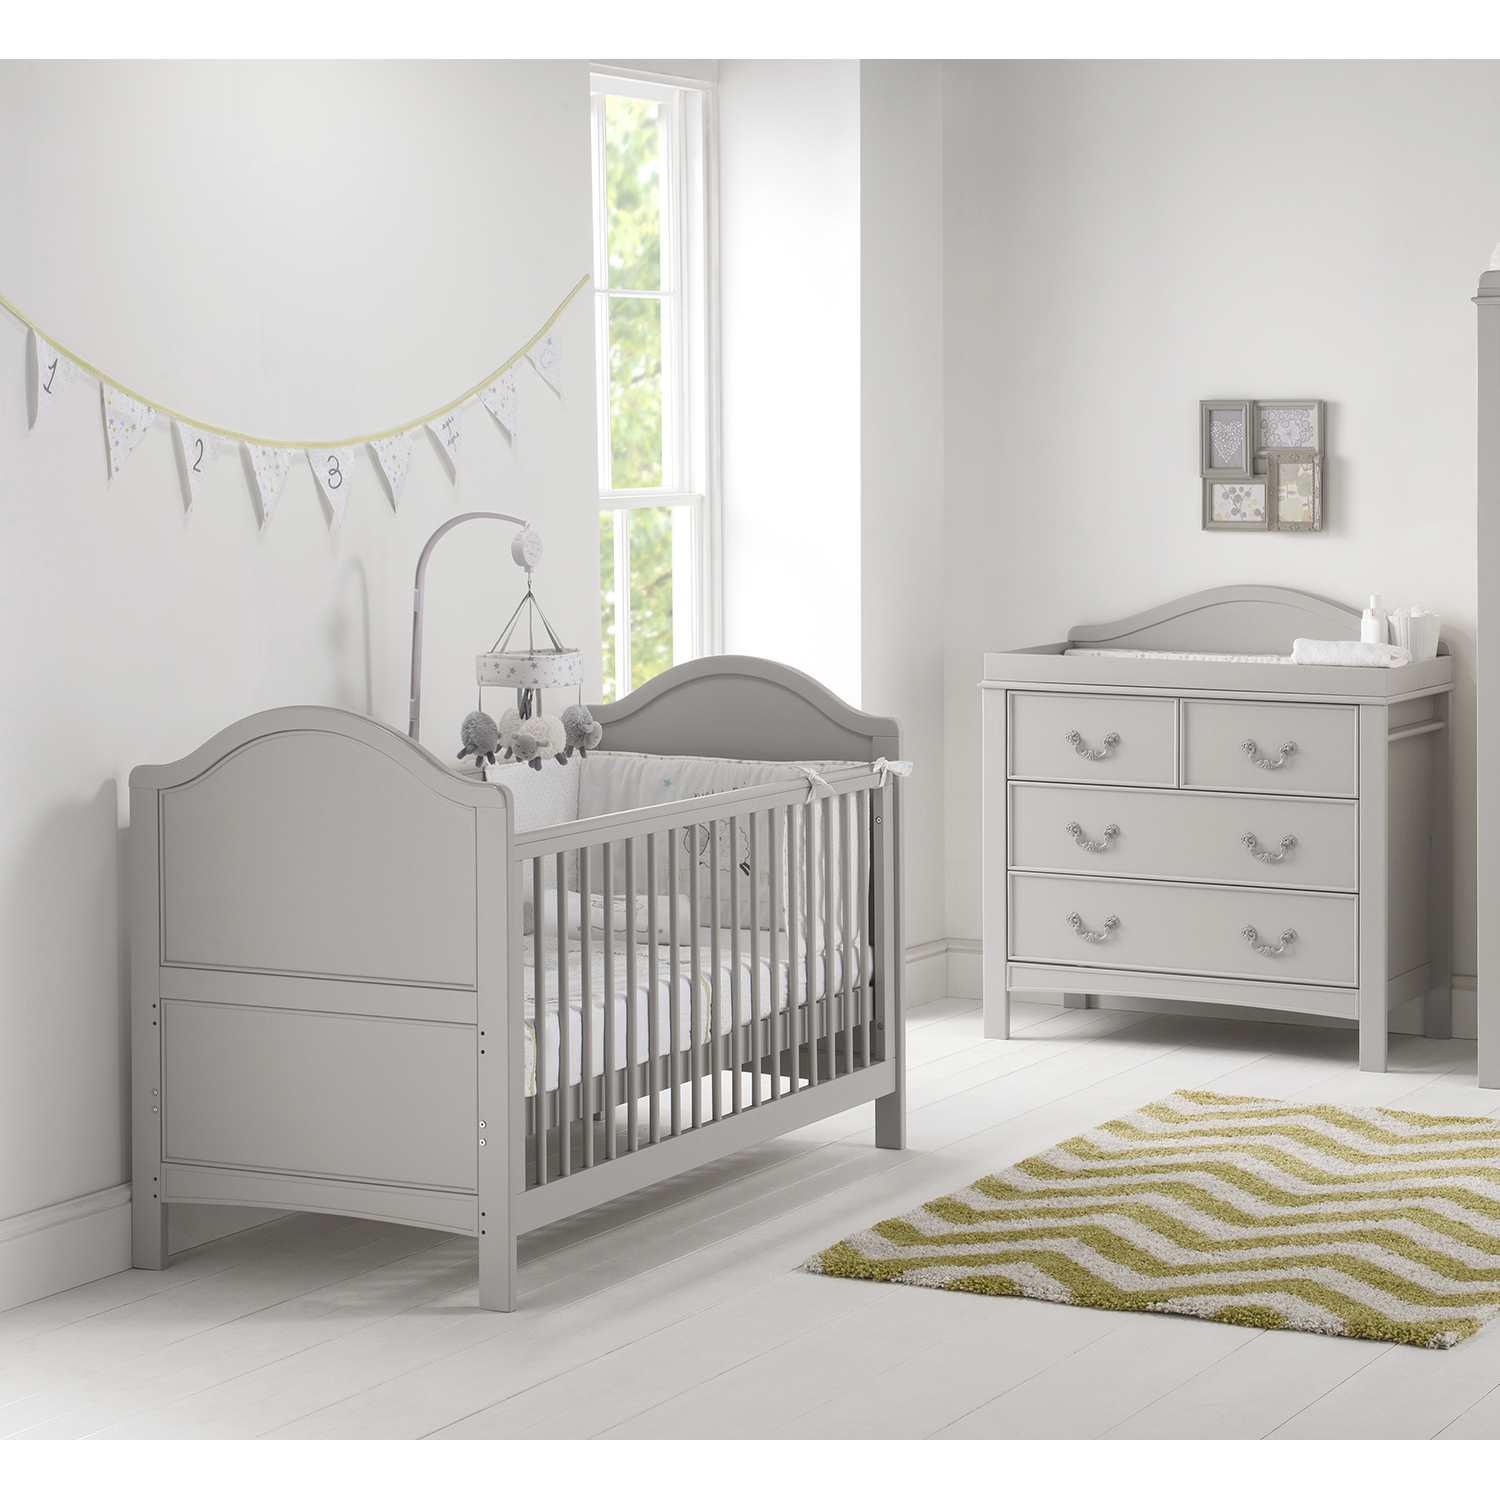 nursery furniture sets east coast toulouse 2 piece roomset GMOHHQF